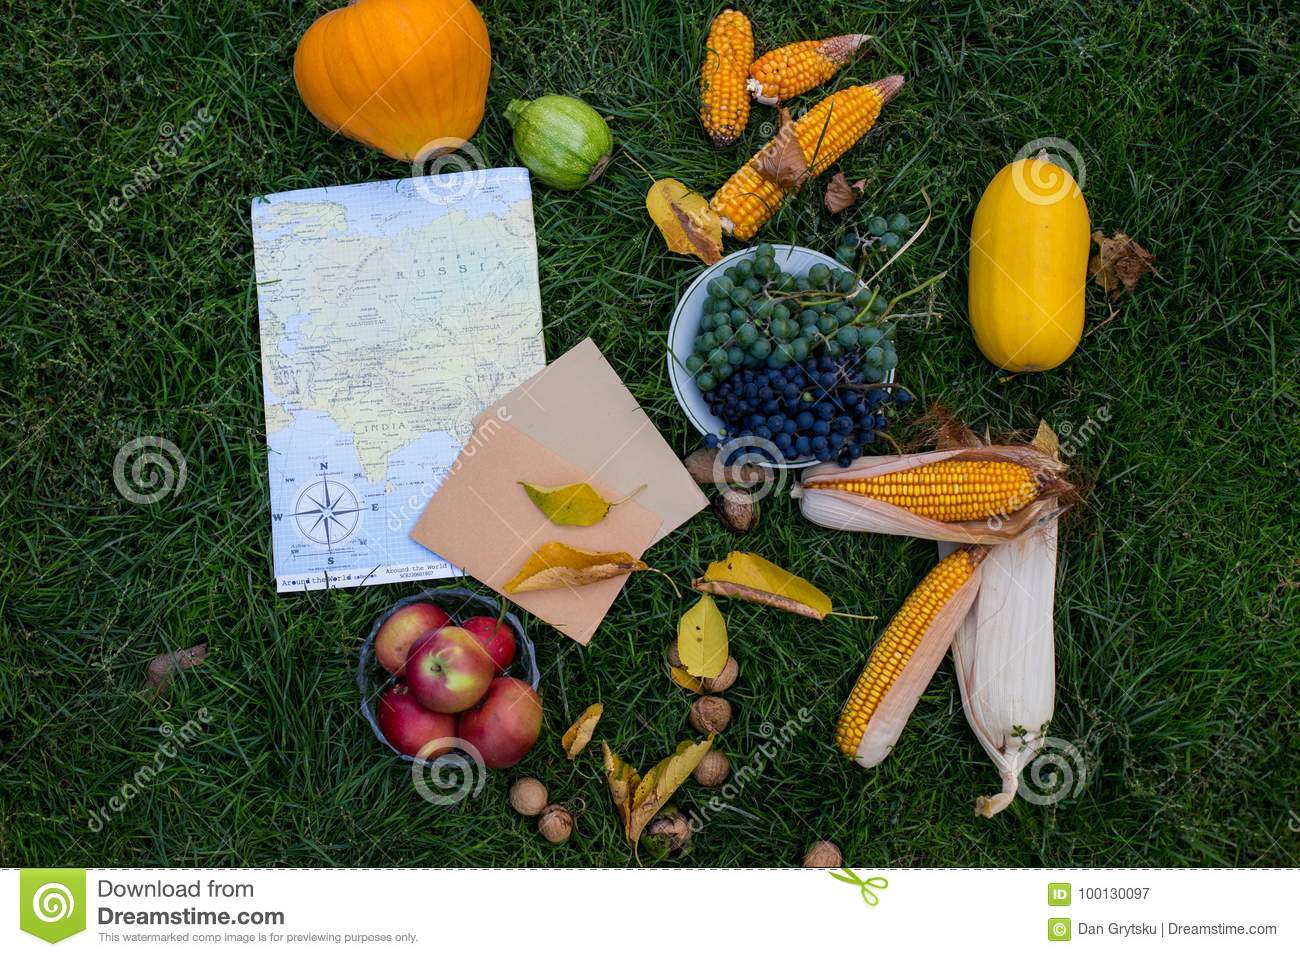 Autumn harvest on the green grass with map and latter. Autumn vegetable on the grass in composition. Map and vegetable. Hallo autu